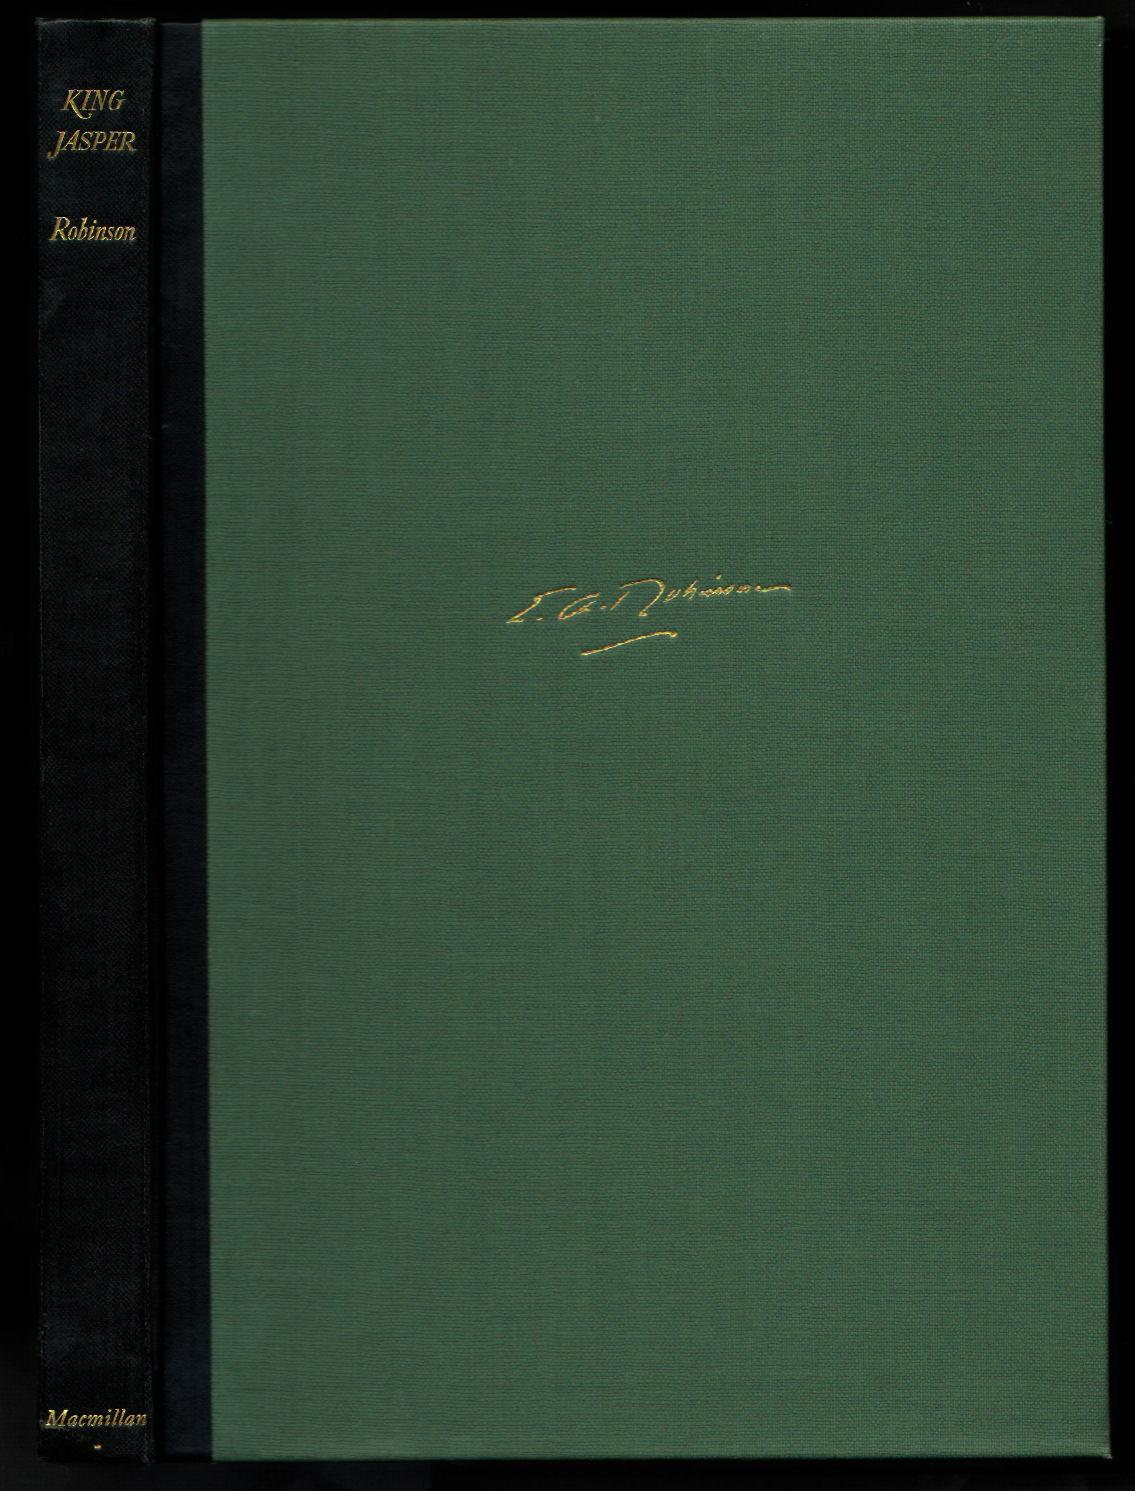 a literary analysis of the literature by edwin arlington robinson Edwin arlington robinson family misfortune    both of his parents died before he was thirty one of his brothers was an alcoholic the other, a drug not really  robinson was not a true pessimist ◦ he felt that life has meaning despite its hardships and that there is hope beyond the black and awful.